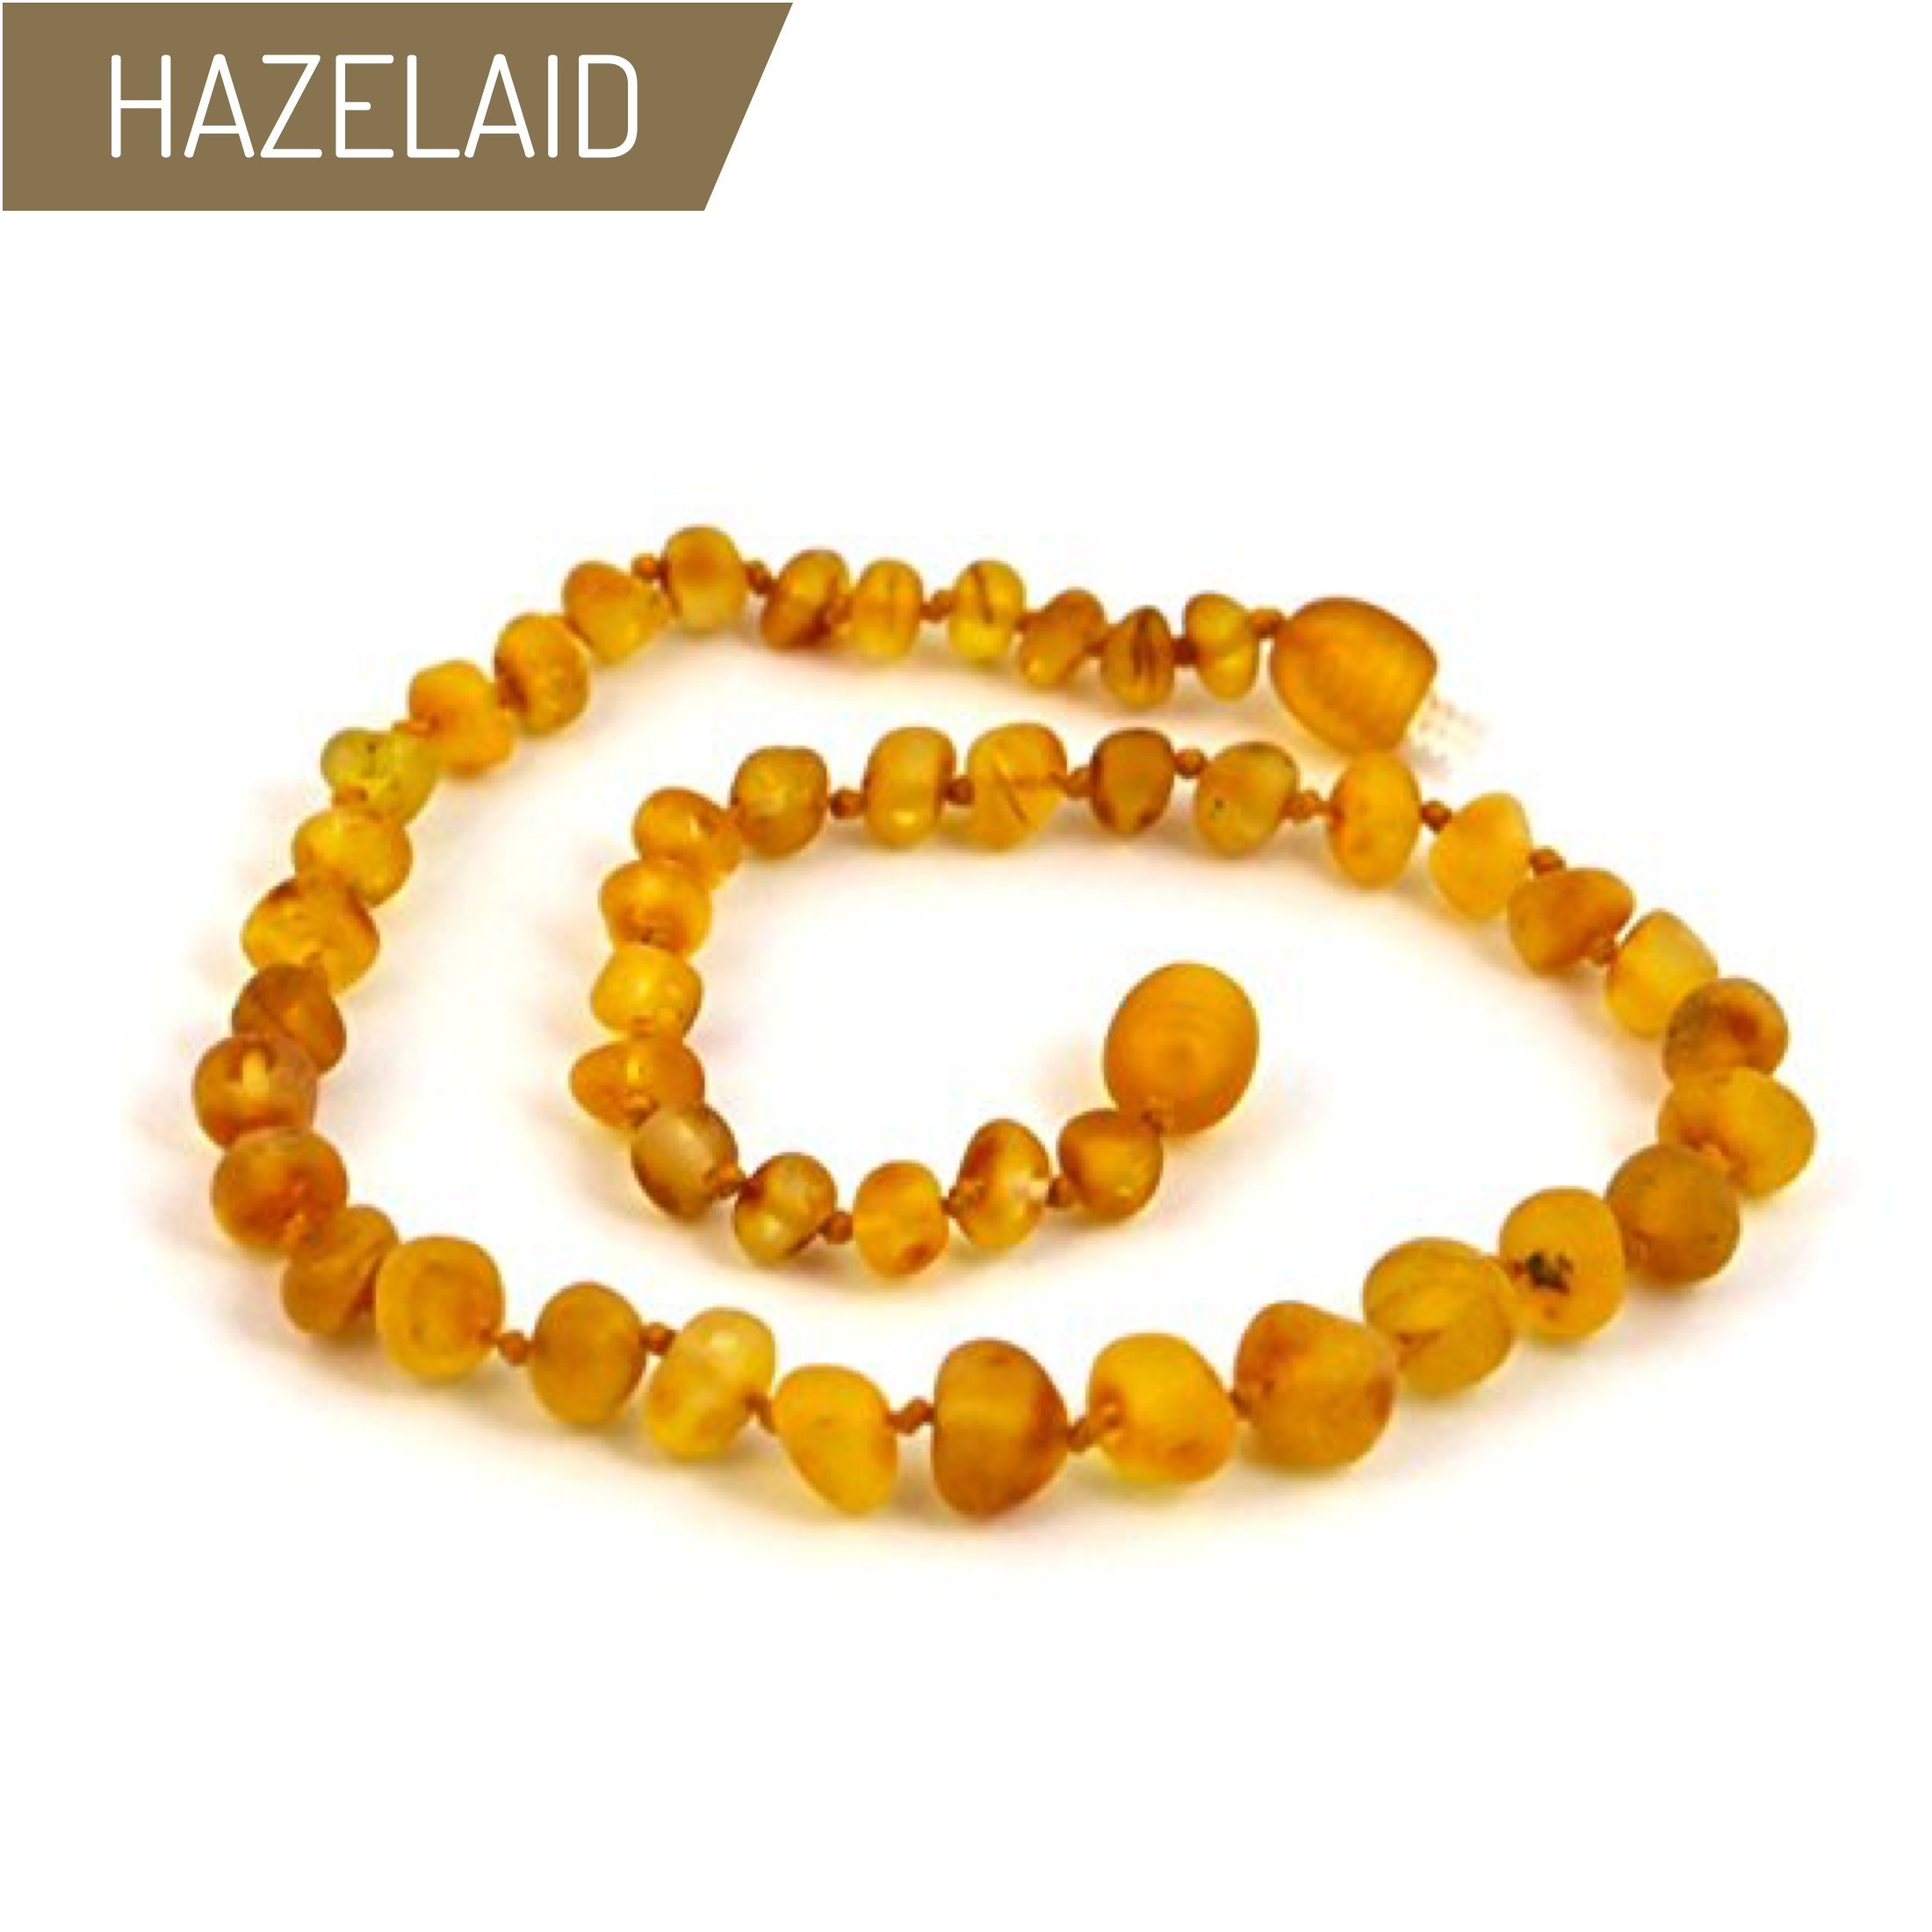 Hazelaid (TM) 14'' Twist-Clasp Baltic Amber Caramel Necklace